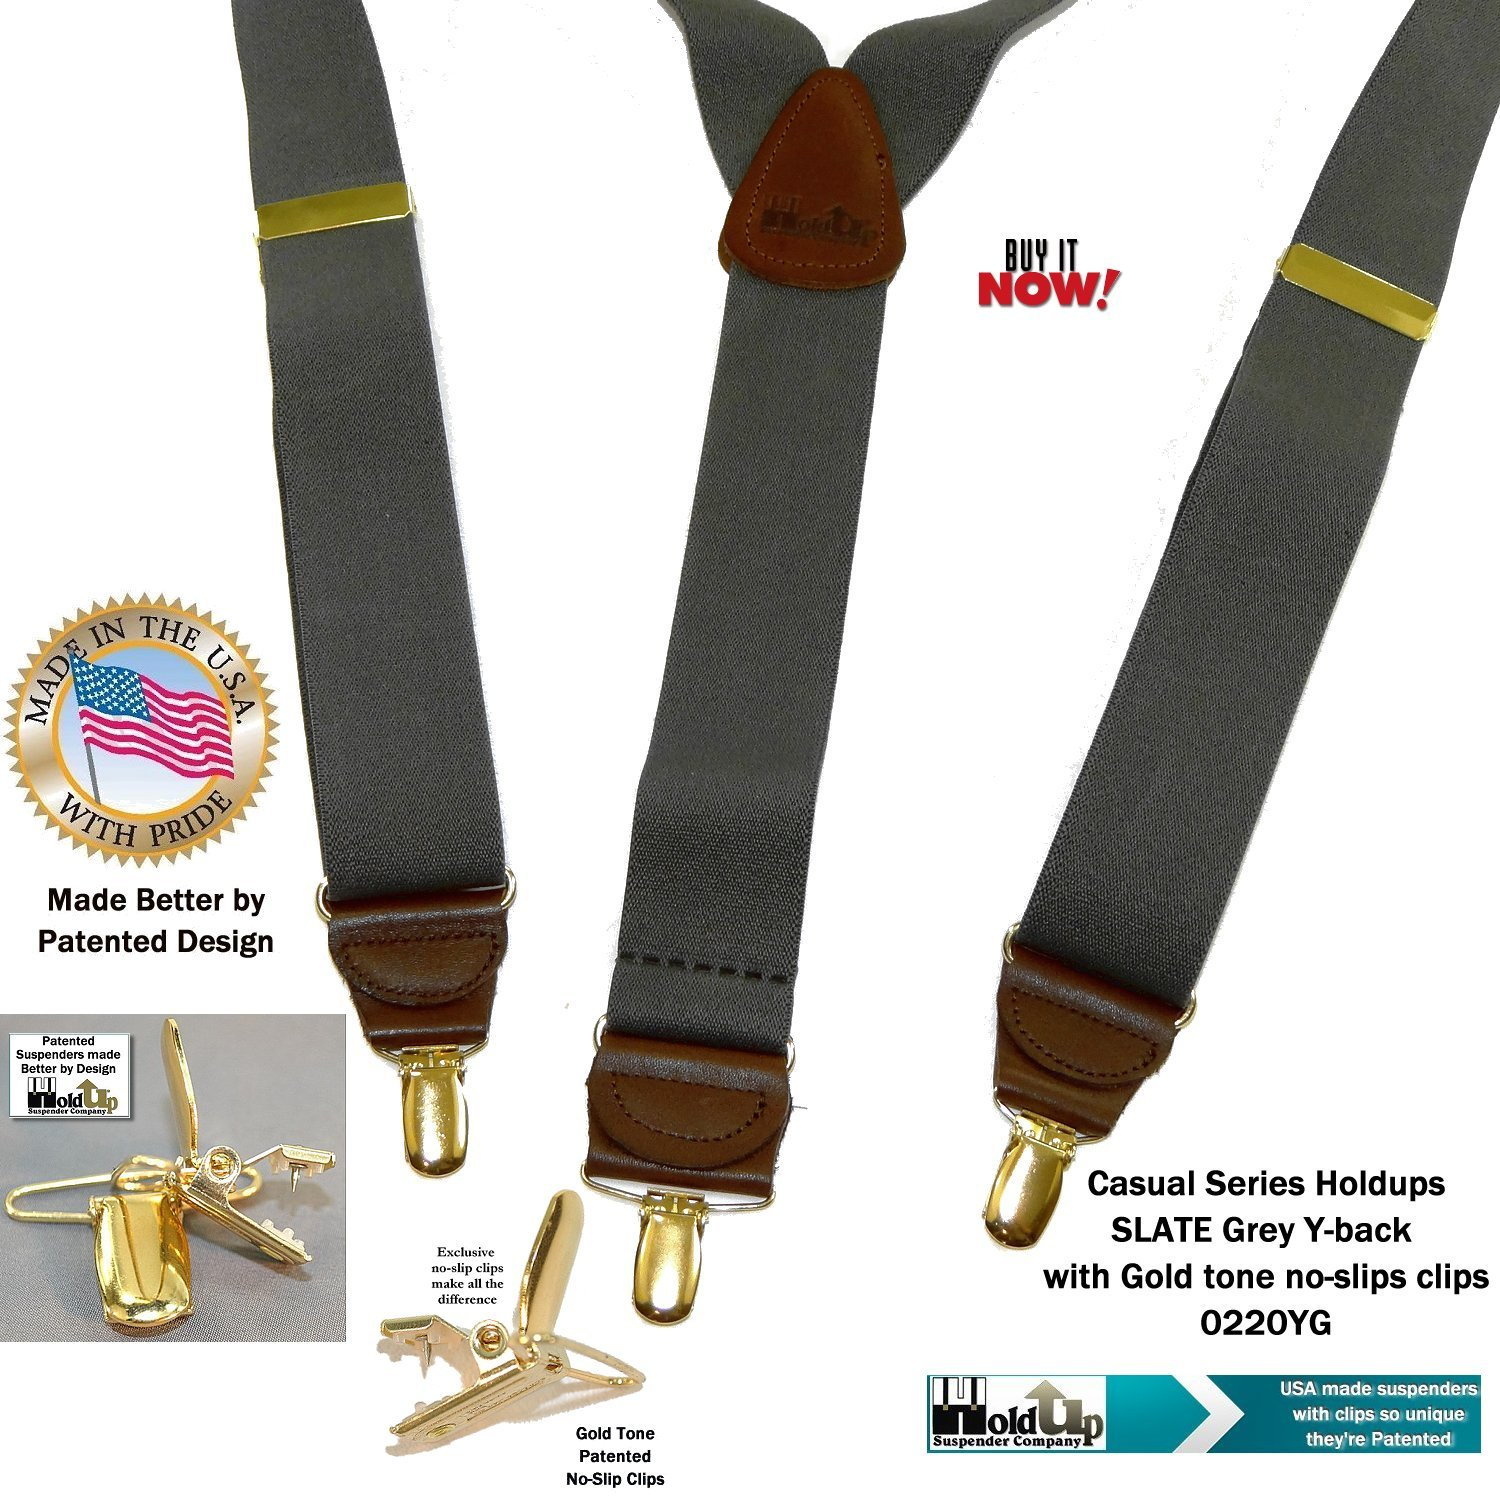 Holdup Suspender Company Slate Grey Men's Y-back Clip-on Suspenders in 1 1/2'' width featuring Patented No-slip Gold-Tone Clips by Hold-Up Suspender Co. (Image #7)